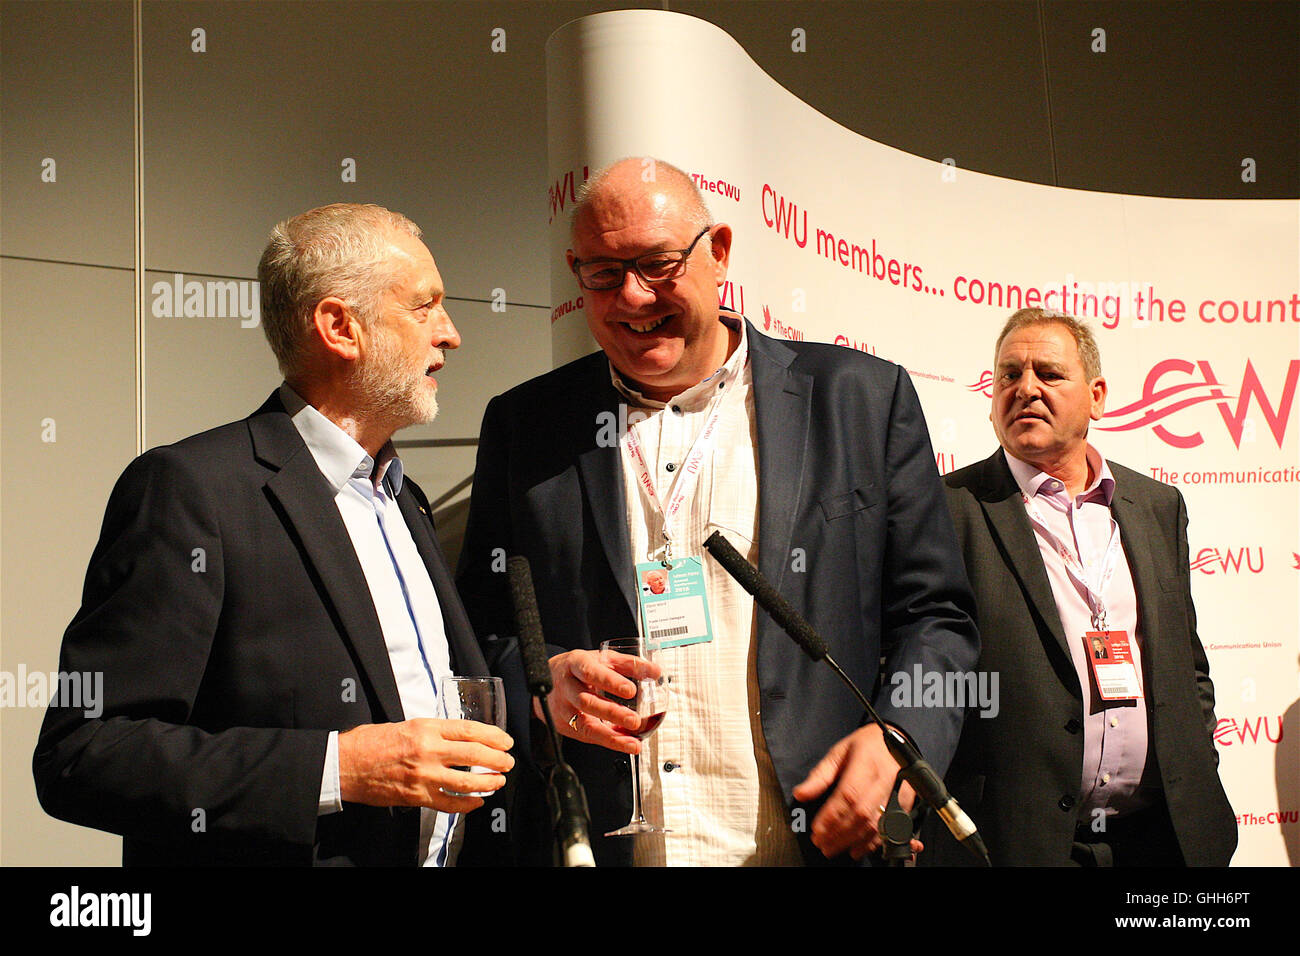 Liverpool, UK. 26th September, 2016. Jeremy Corbyn talks with Dave Ward leaders of the Communications Union at a - Stock Image